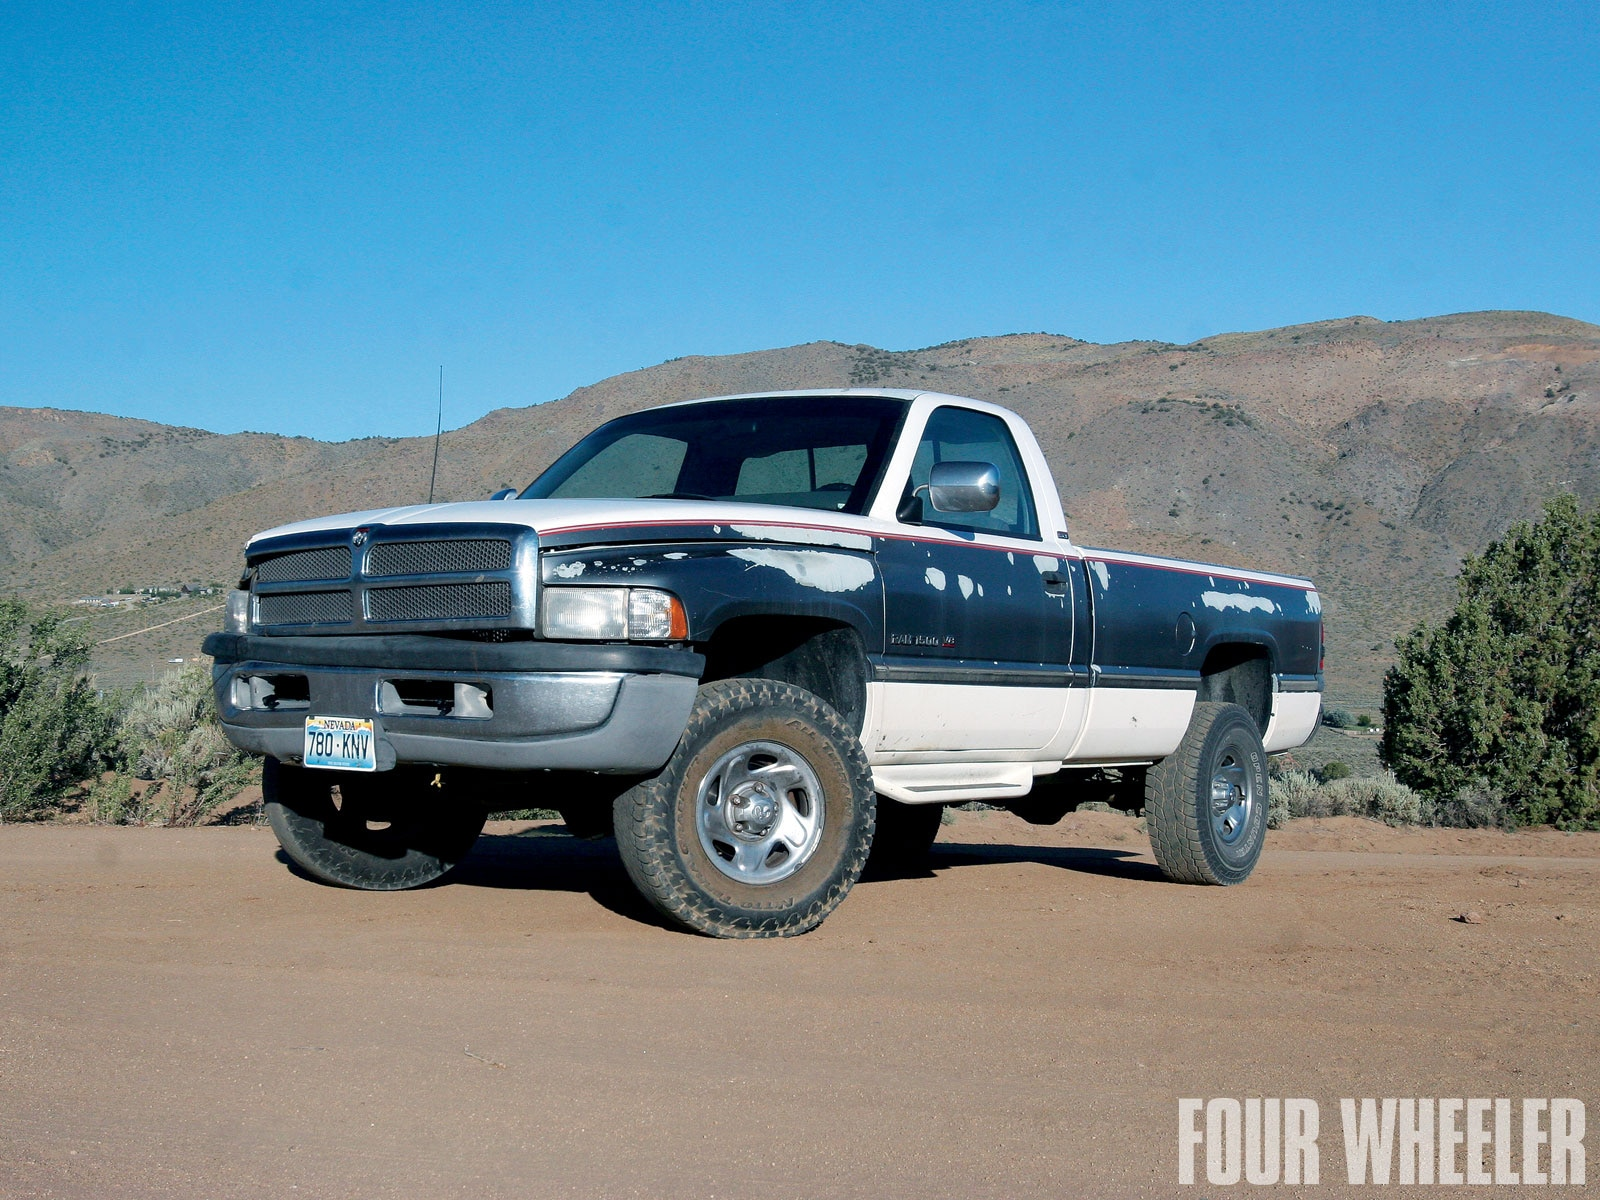 129 1005 01+reworked 1994 dodge ram 1500+truck